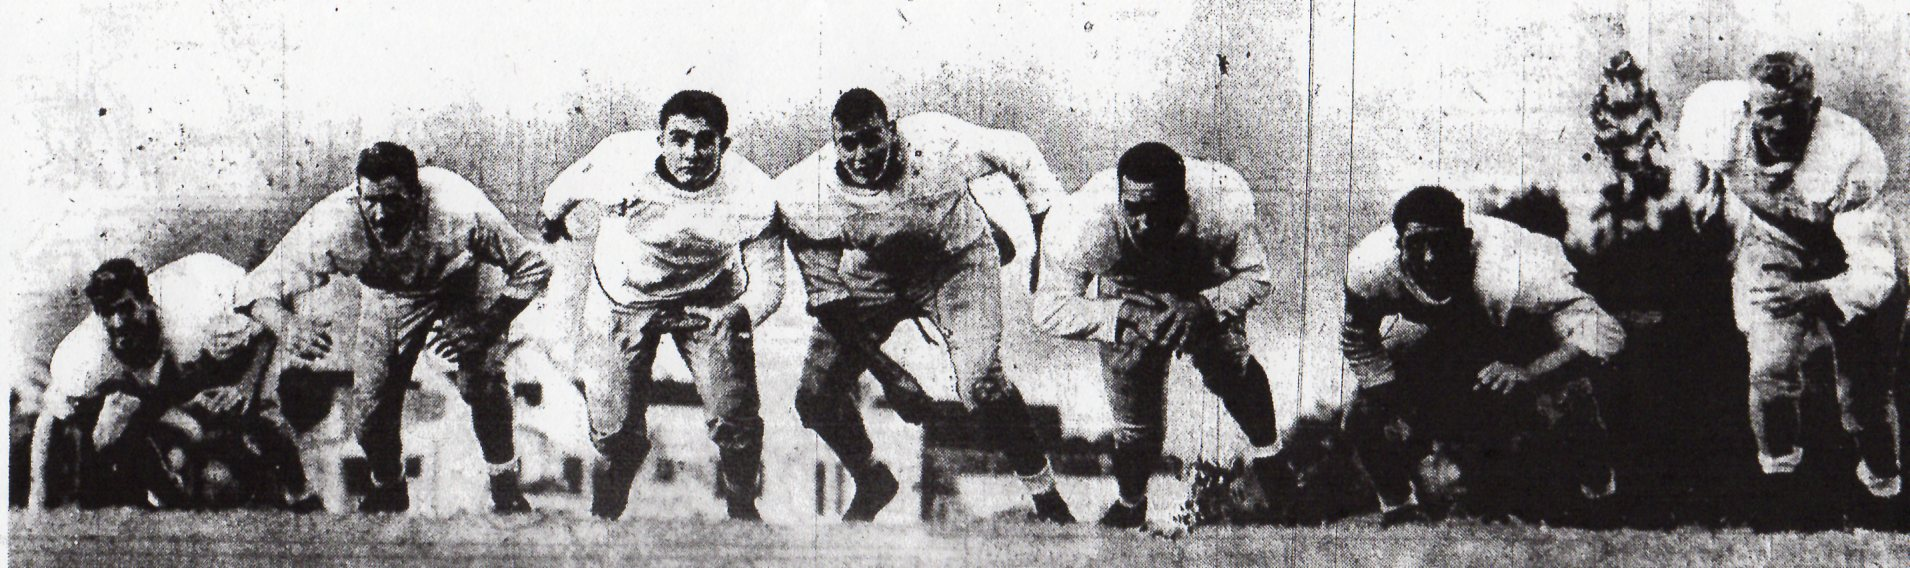 Bill Beeler, Hugh Latham, Jack Rosnos, Lou Erreca, Bob Stein, Volney Peters, and Dave Faddis (from left) were starting linemen in football carnival for Hoover. Peters went on to play nine seasons in NFL.